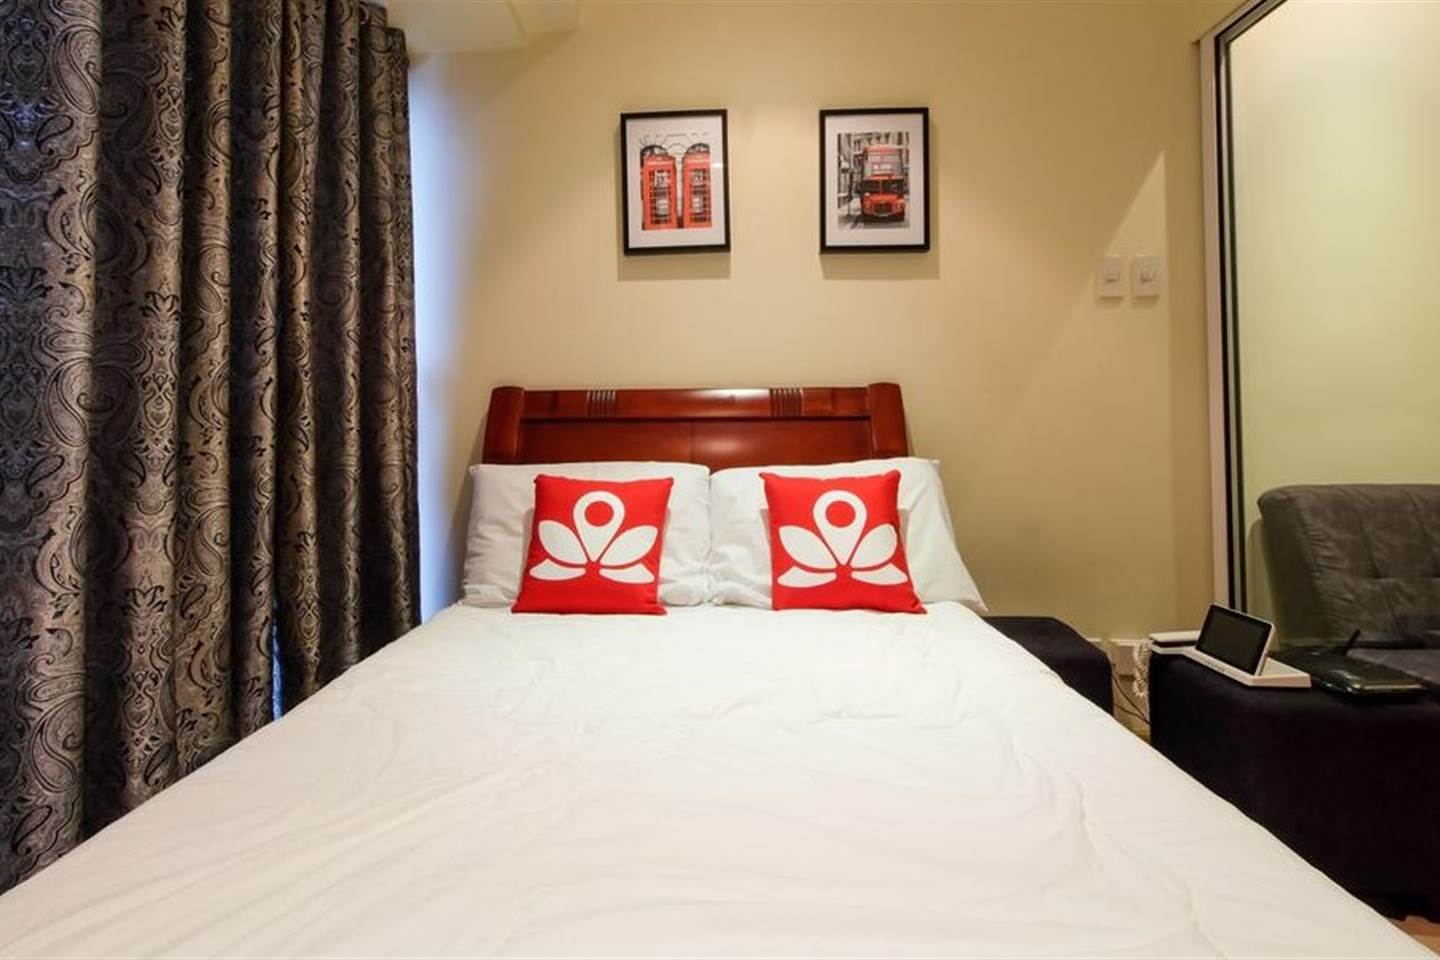 Condo Deluxe Double Room 1 At Home Knightsbridge